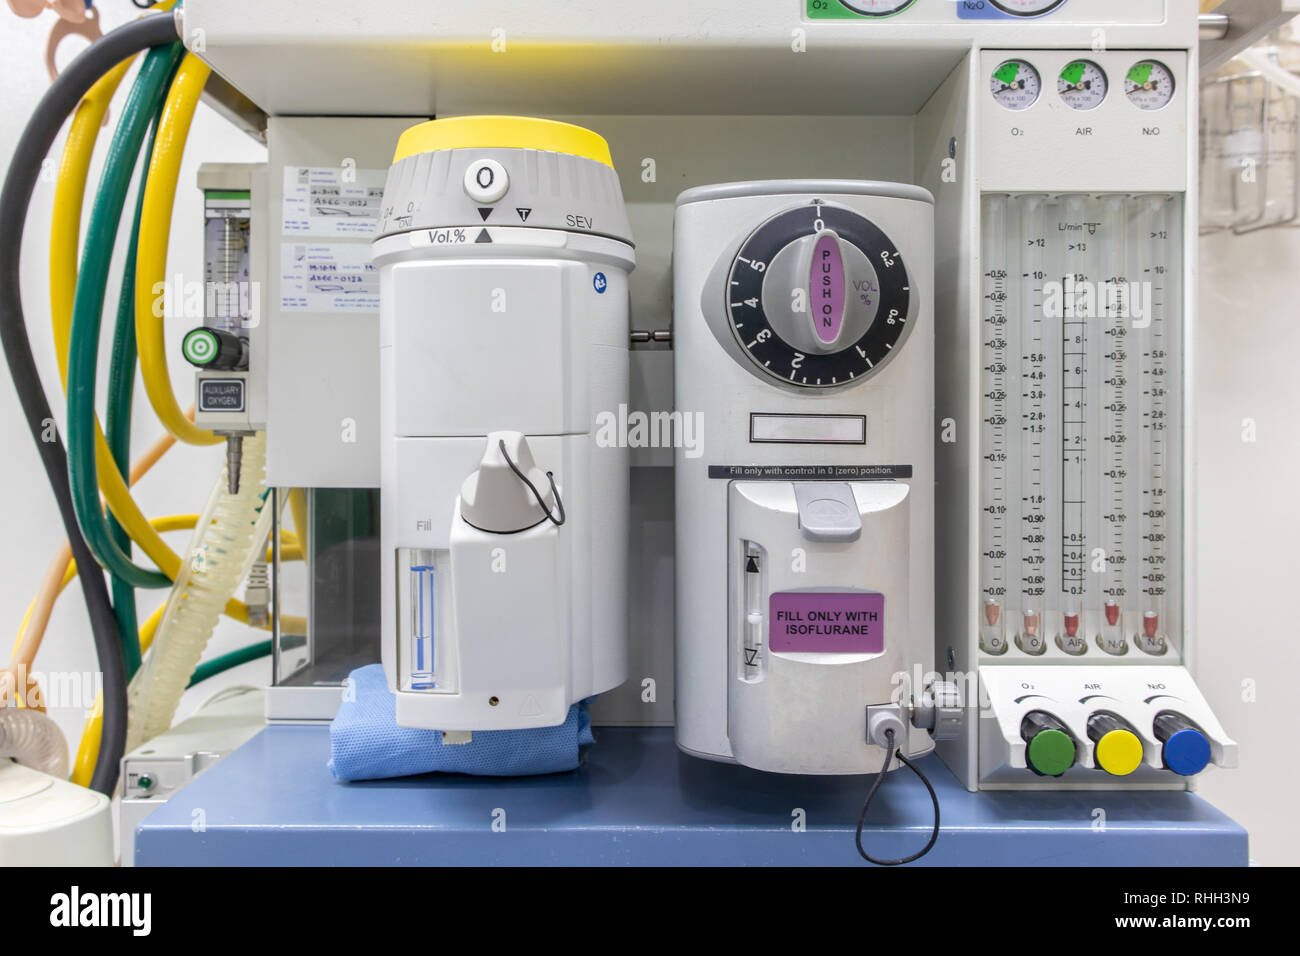 Anesthesia Machine in hospital operating room. Stock Photo